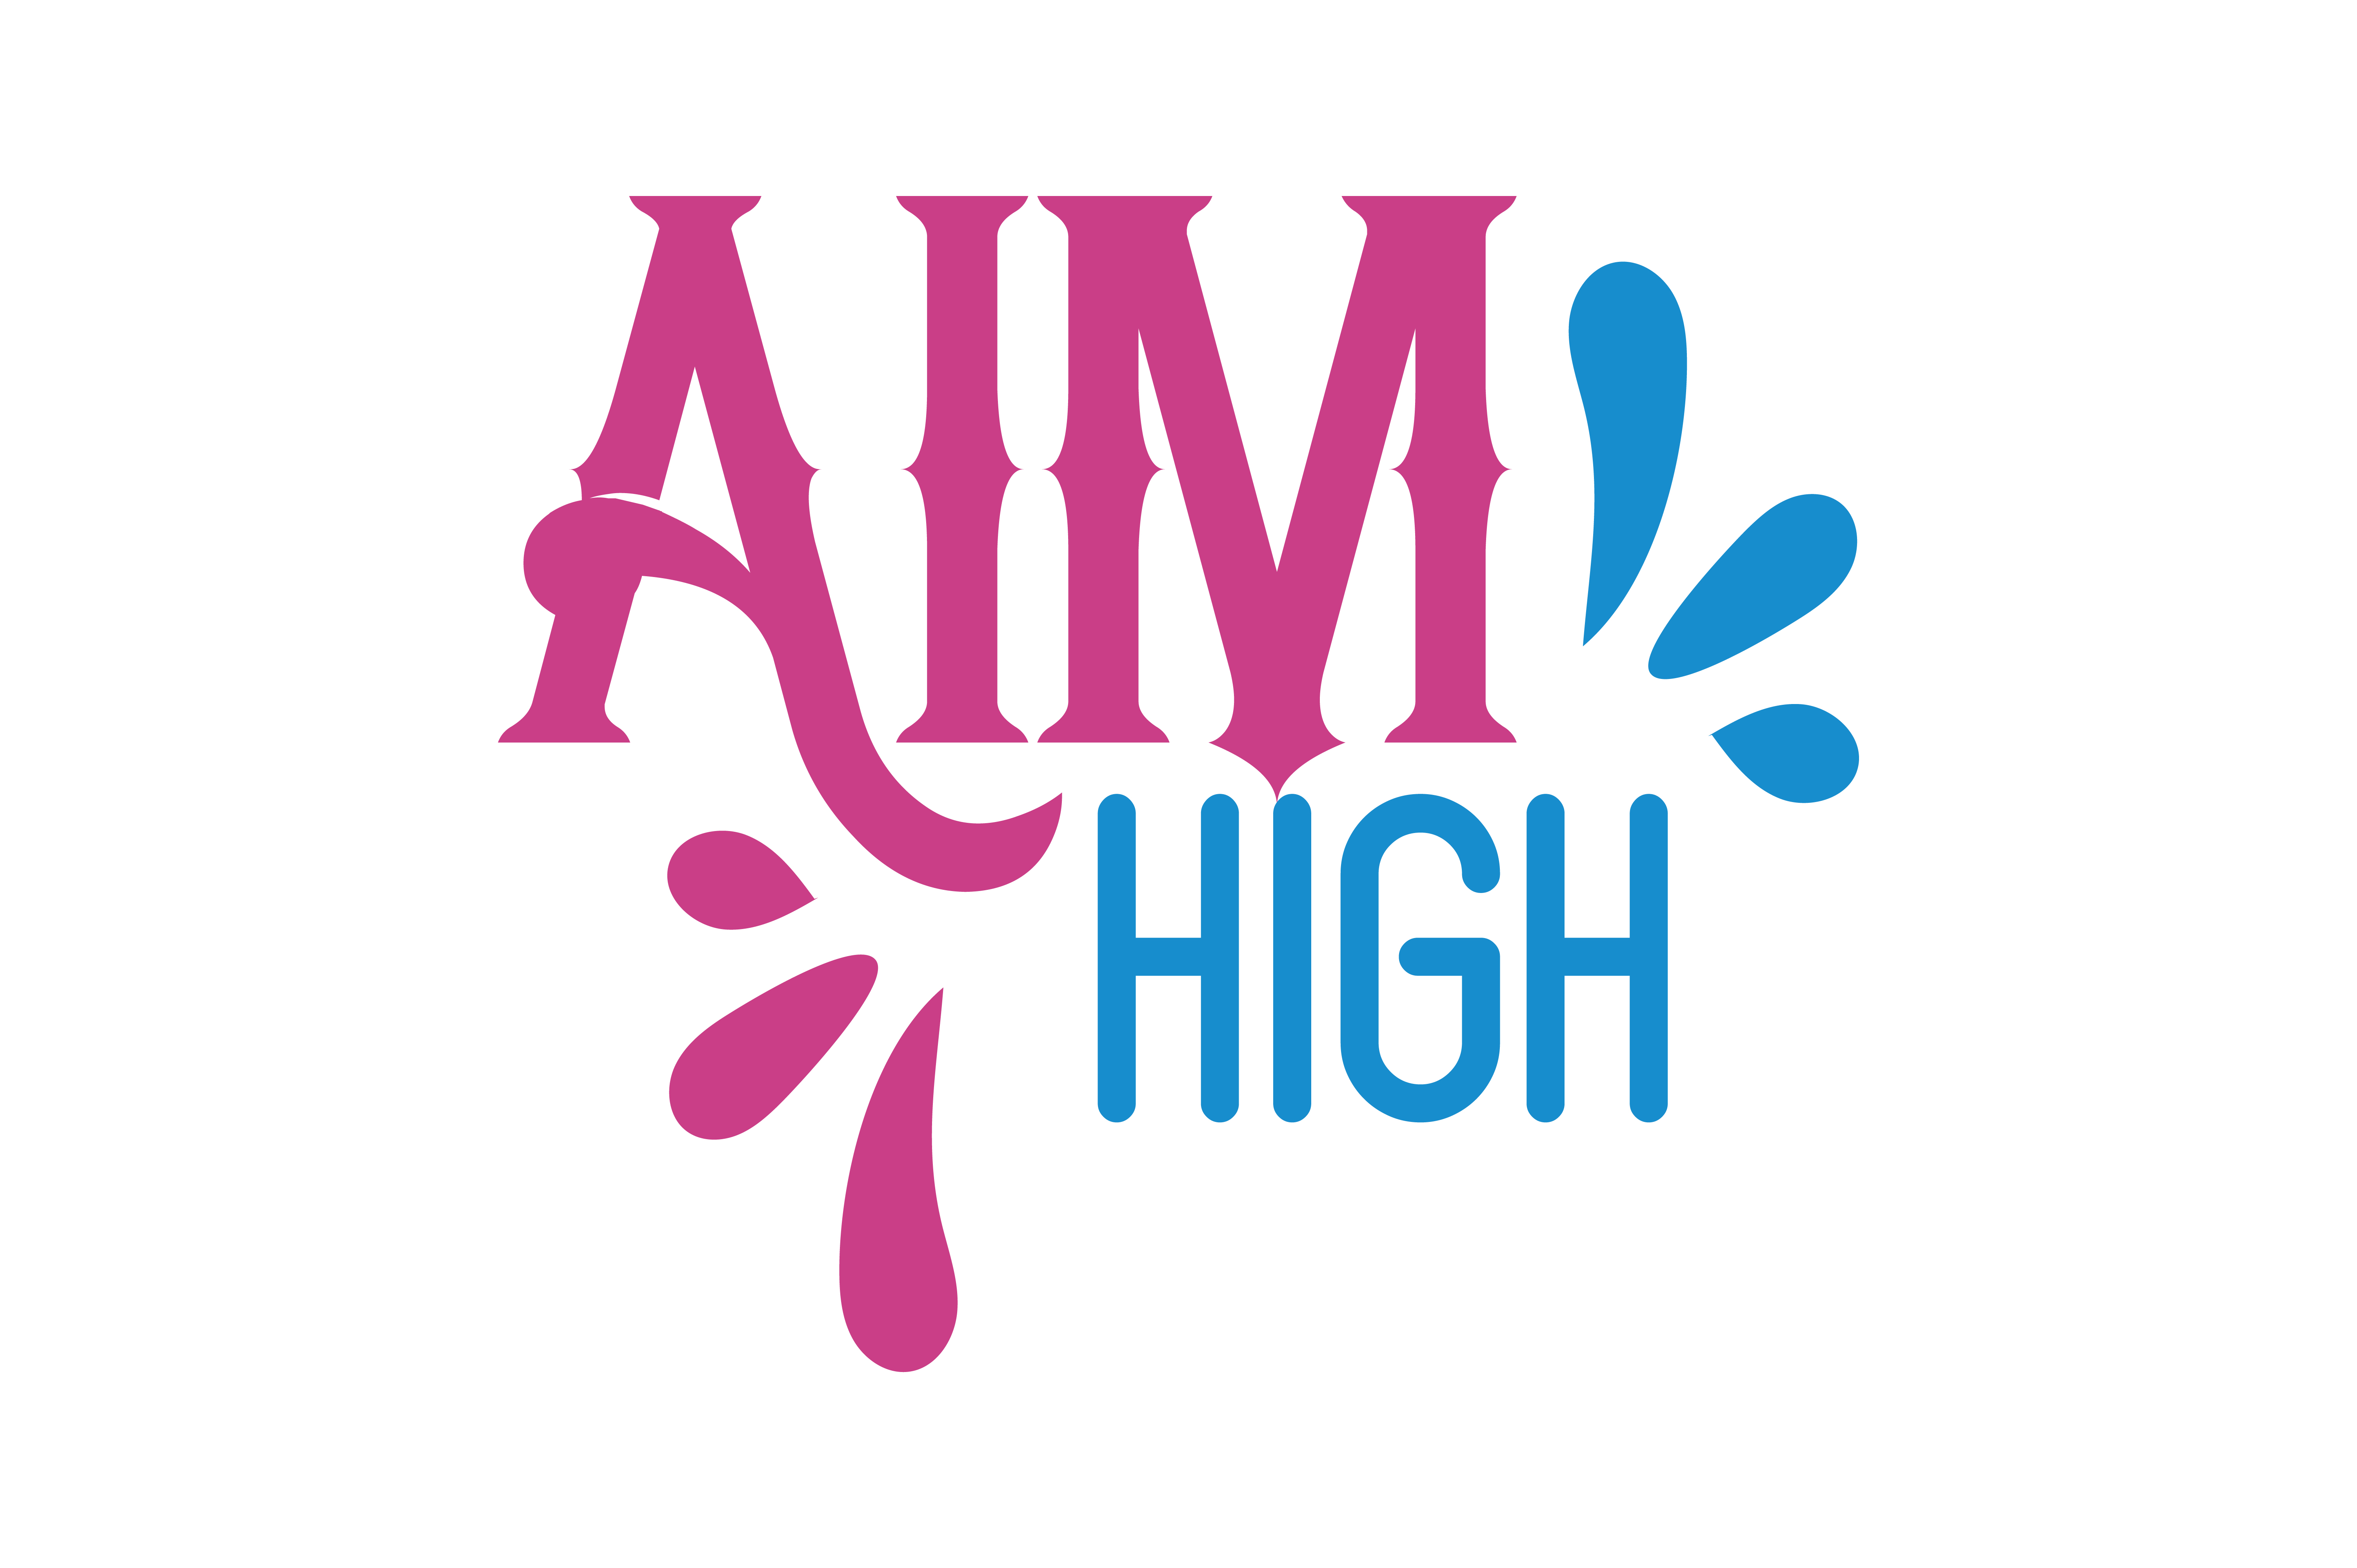 Aim High Graphic By Thelucky Creative Fabrica